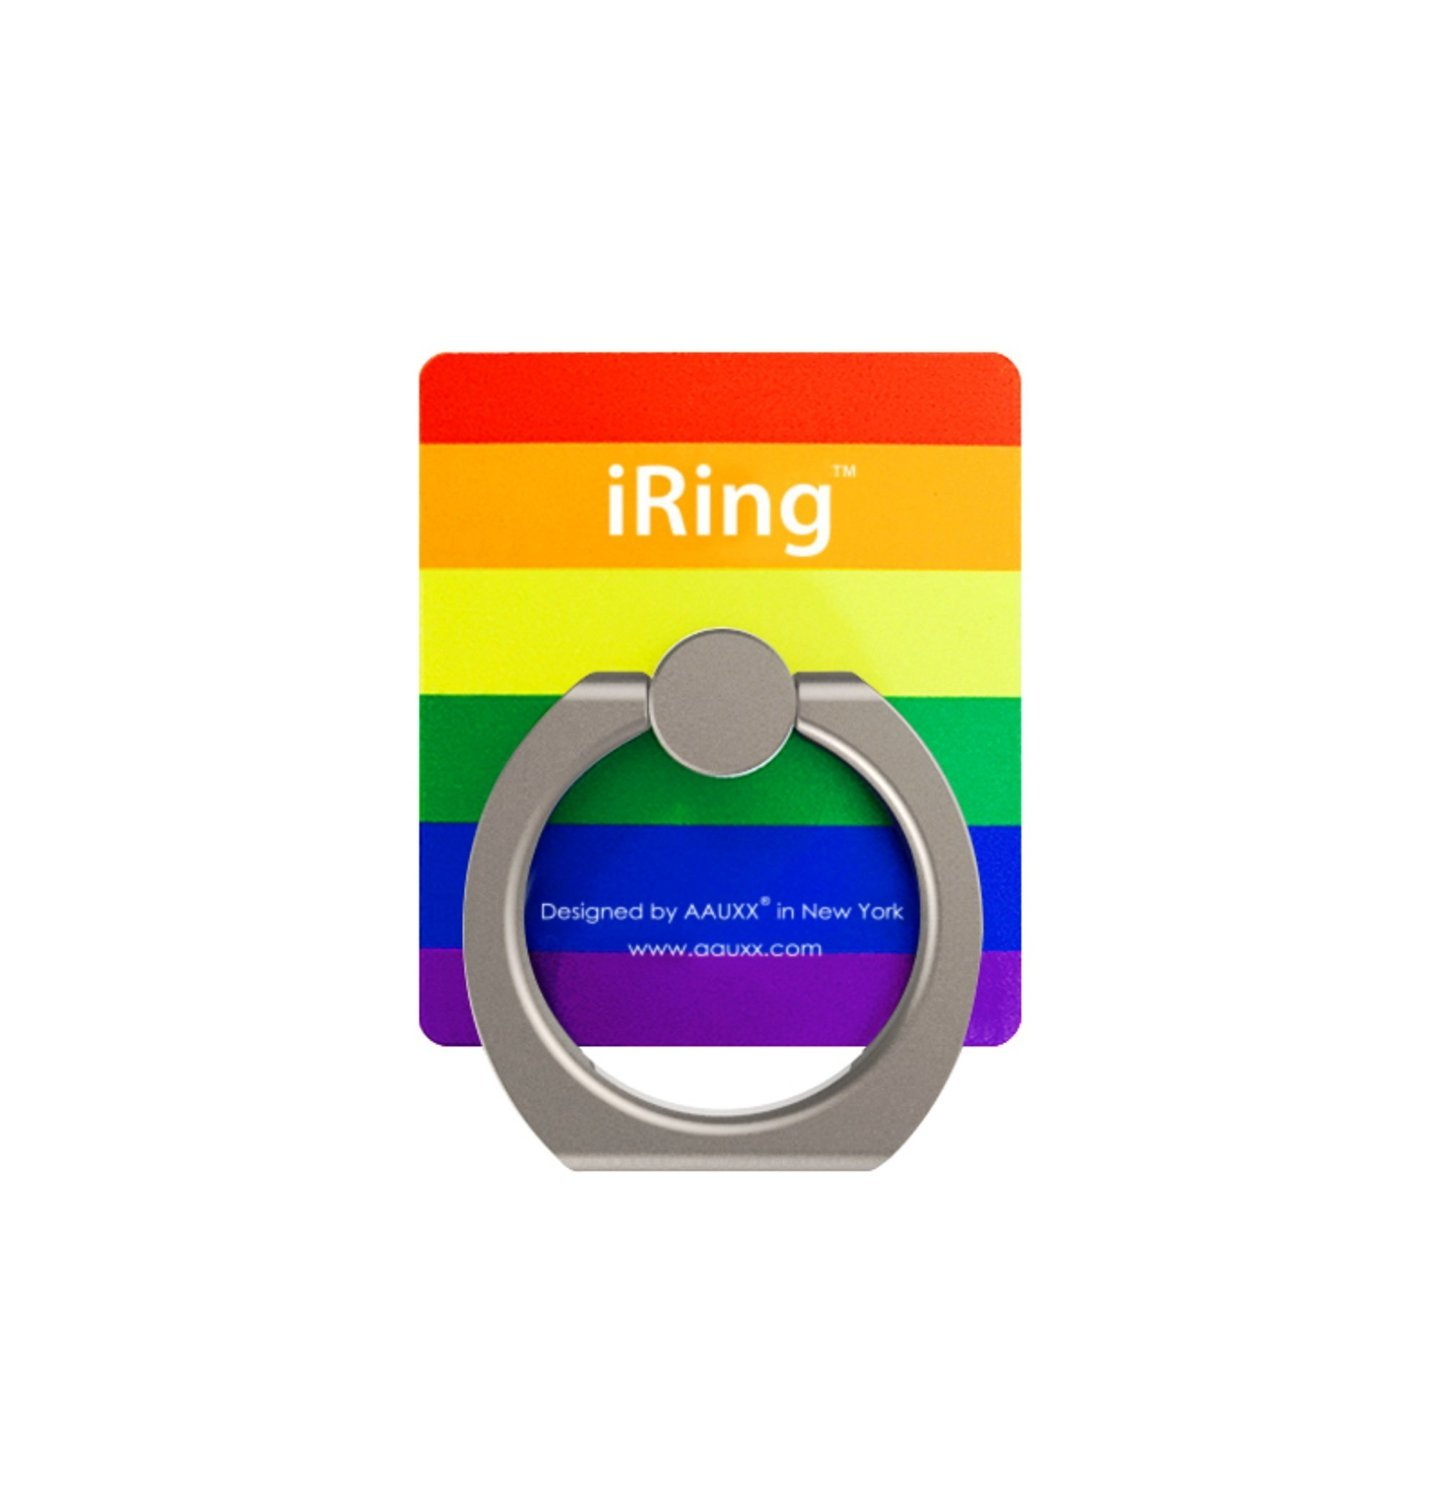 Iring Universal Masstige Ring Grip Stand Holder For Any Smart Device Hook Rainbow Electronics